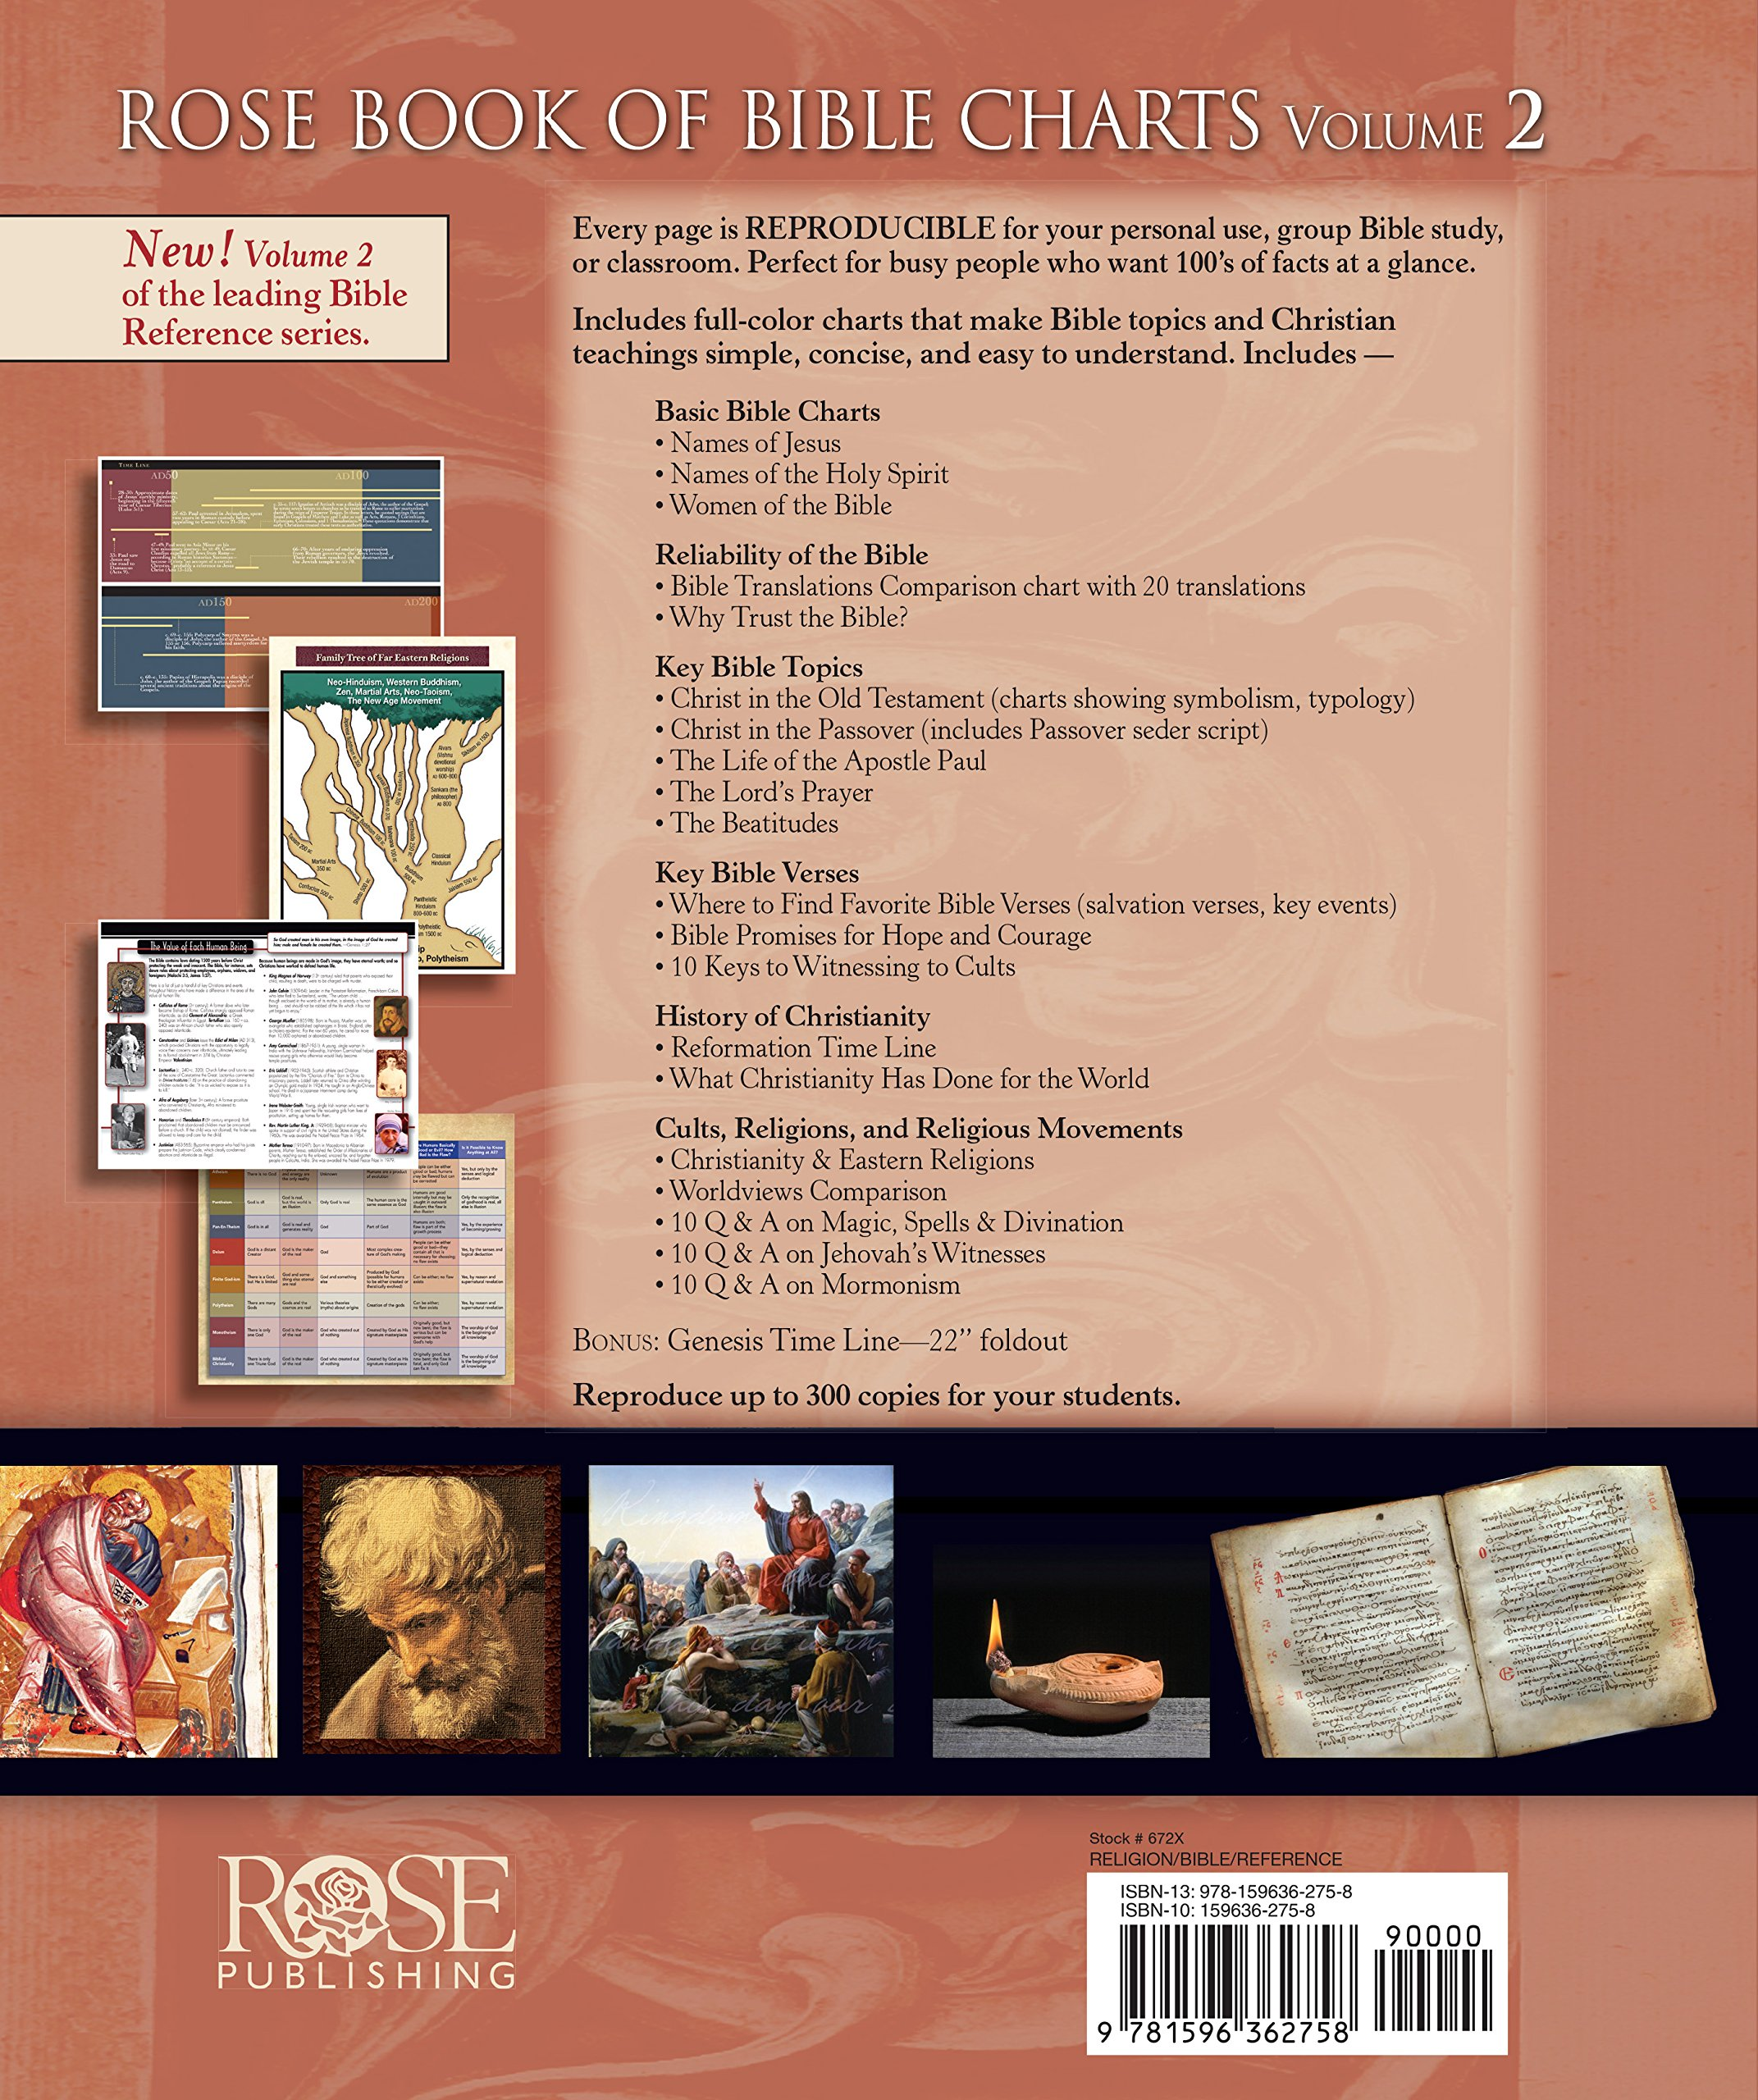 Rose book of bible charts vol 2 rose publishing 9781596362758 rose book of bible charts vol 2 rose publishing 9781596362758 amazon books biocorpaavc Gallery